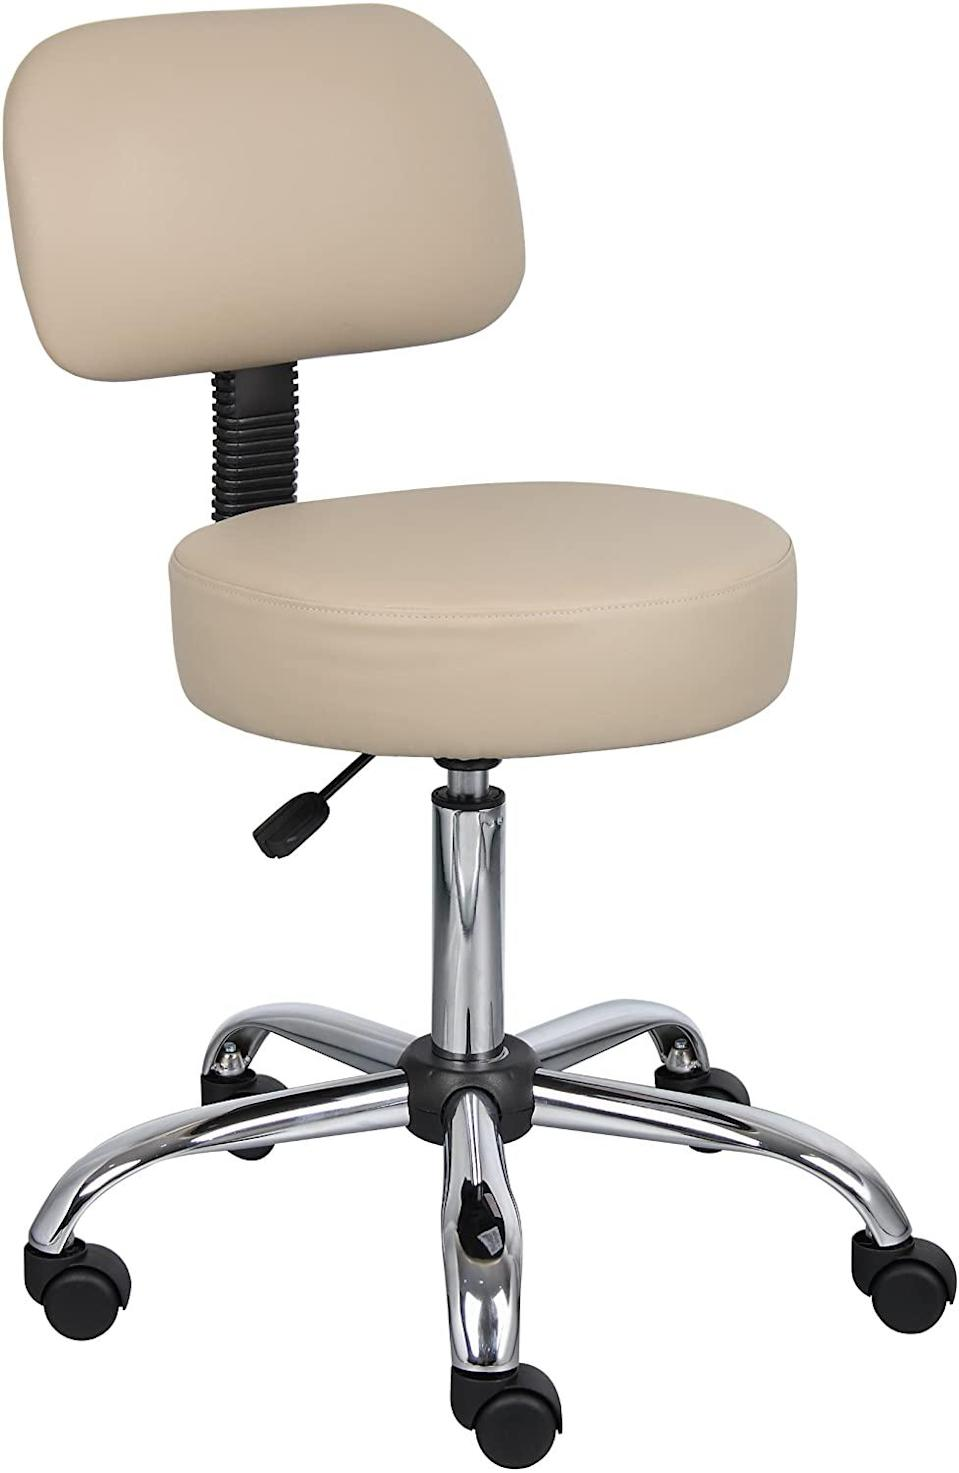 """<h2>Boss Office Products Be Well Medical Spa Stool With Back</h2><br><strong>Best For: Spine Alignment</strong><br>For firmer support that comes tattoo-artist approved, this stool-style wheely chair is your WFH savior — its upright design mimics the natural shape of your spine for increased comfort. <br><br><strong>The Hype:</strong> 4.7 out of 5 stars and 5,953 reviews on <a href=""""https://amzn.to/35lYvnb"""" rel=""""nofollow noopener"""" target=""""_blank"""" data-ylk=""""slk:Amazon"""" class=""""link rapid-noclick-resp"""">Amazon</a><br><br><strong>Comfy Butts Say: </strong>""""I'm a tattoo artist, so I spend all day sitting in these types of chairs. I was looking for something fairly inexpensive but comfortable and sturdy. Most tattoo chairs run from $150-300 dollars — bought this one for $55 bucks and it's perfect for what I do. Comfortable large seat. Nice back support. Glad I found this on here. Good price.""""<br><br><strong>Boss Office Products</strong> Be Well Medical Spa Stool with Back, $, available at <a href=""""https://amzn.to/2yfBg1O"""" rel=""""nofollow noopener"""" target=""""_blank"""" data-ylk=""""slk:Amazon"""" class=""""link rapid-noclick-resp"""">Amazon</a>"""